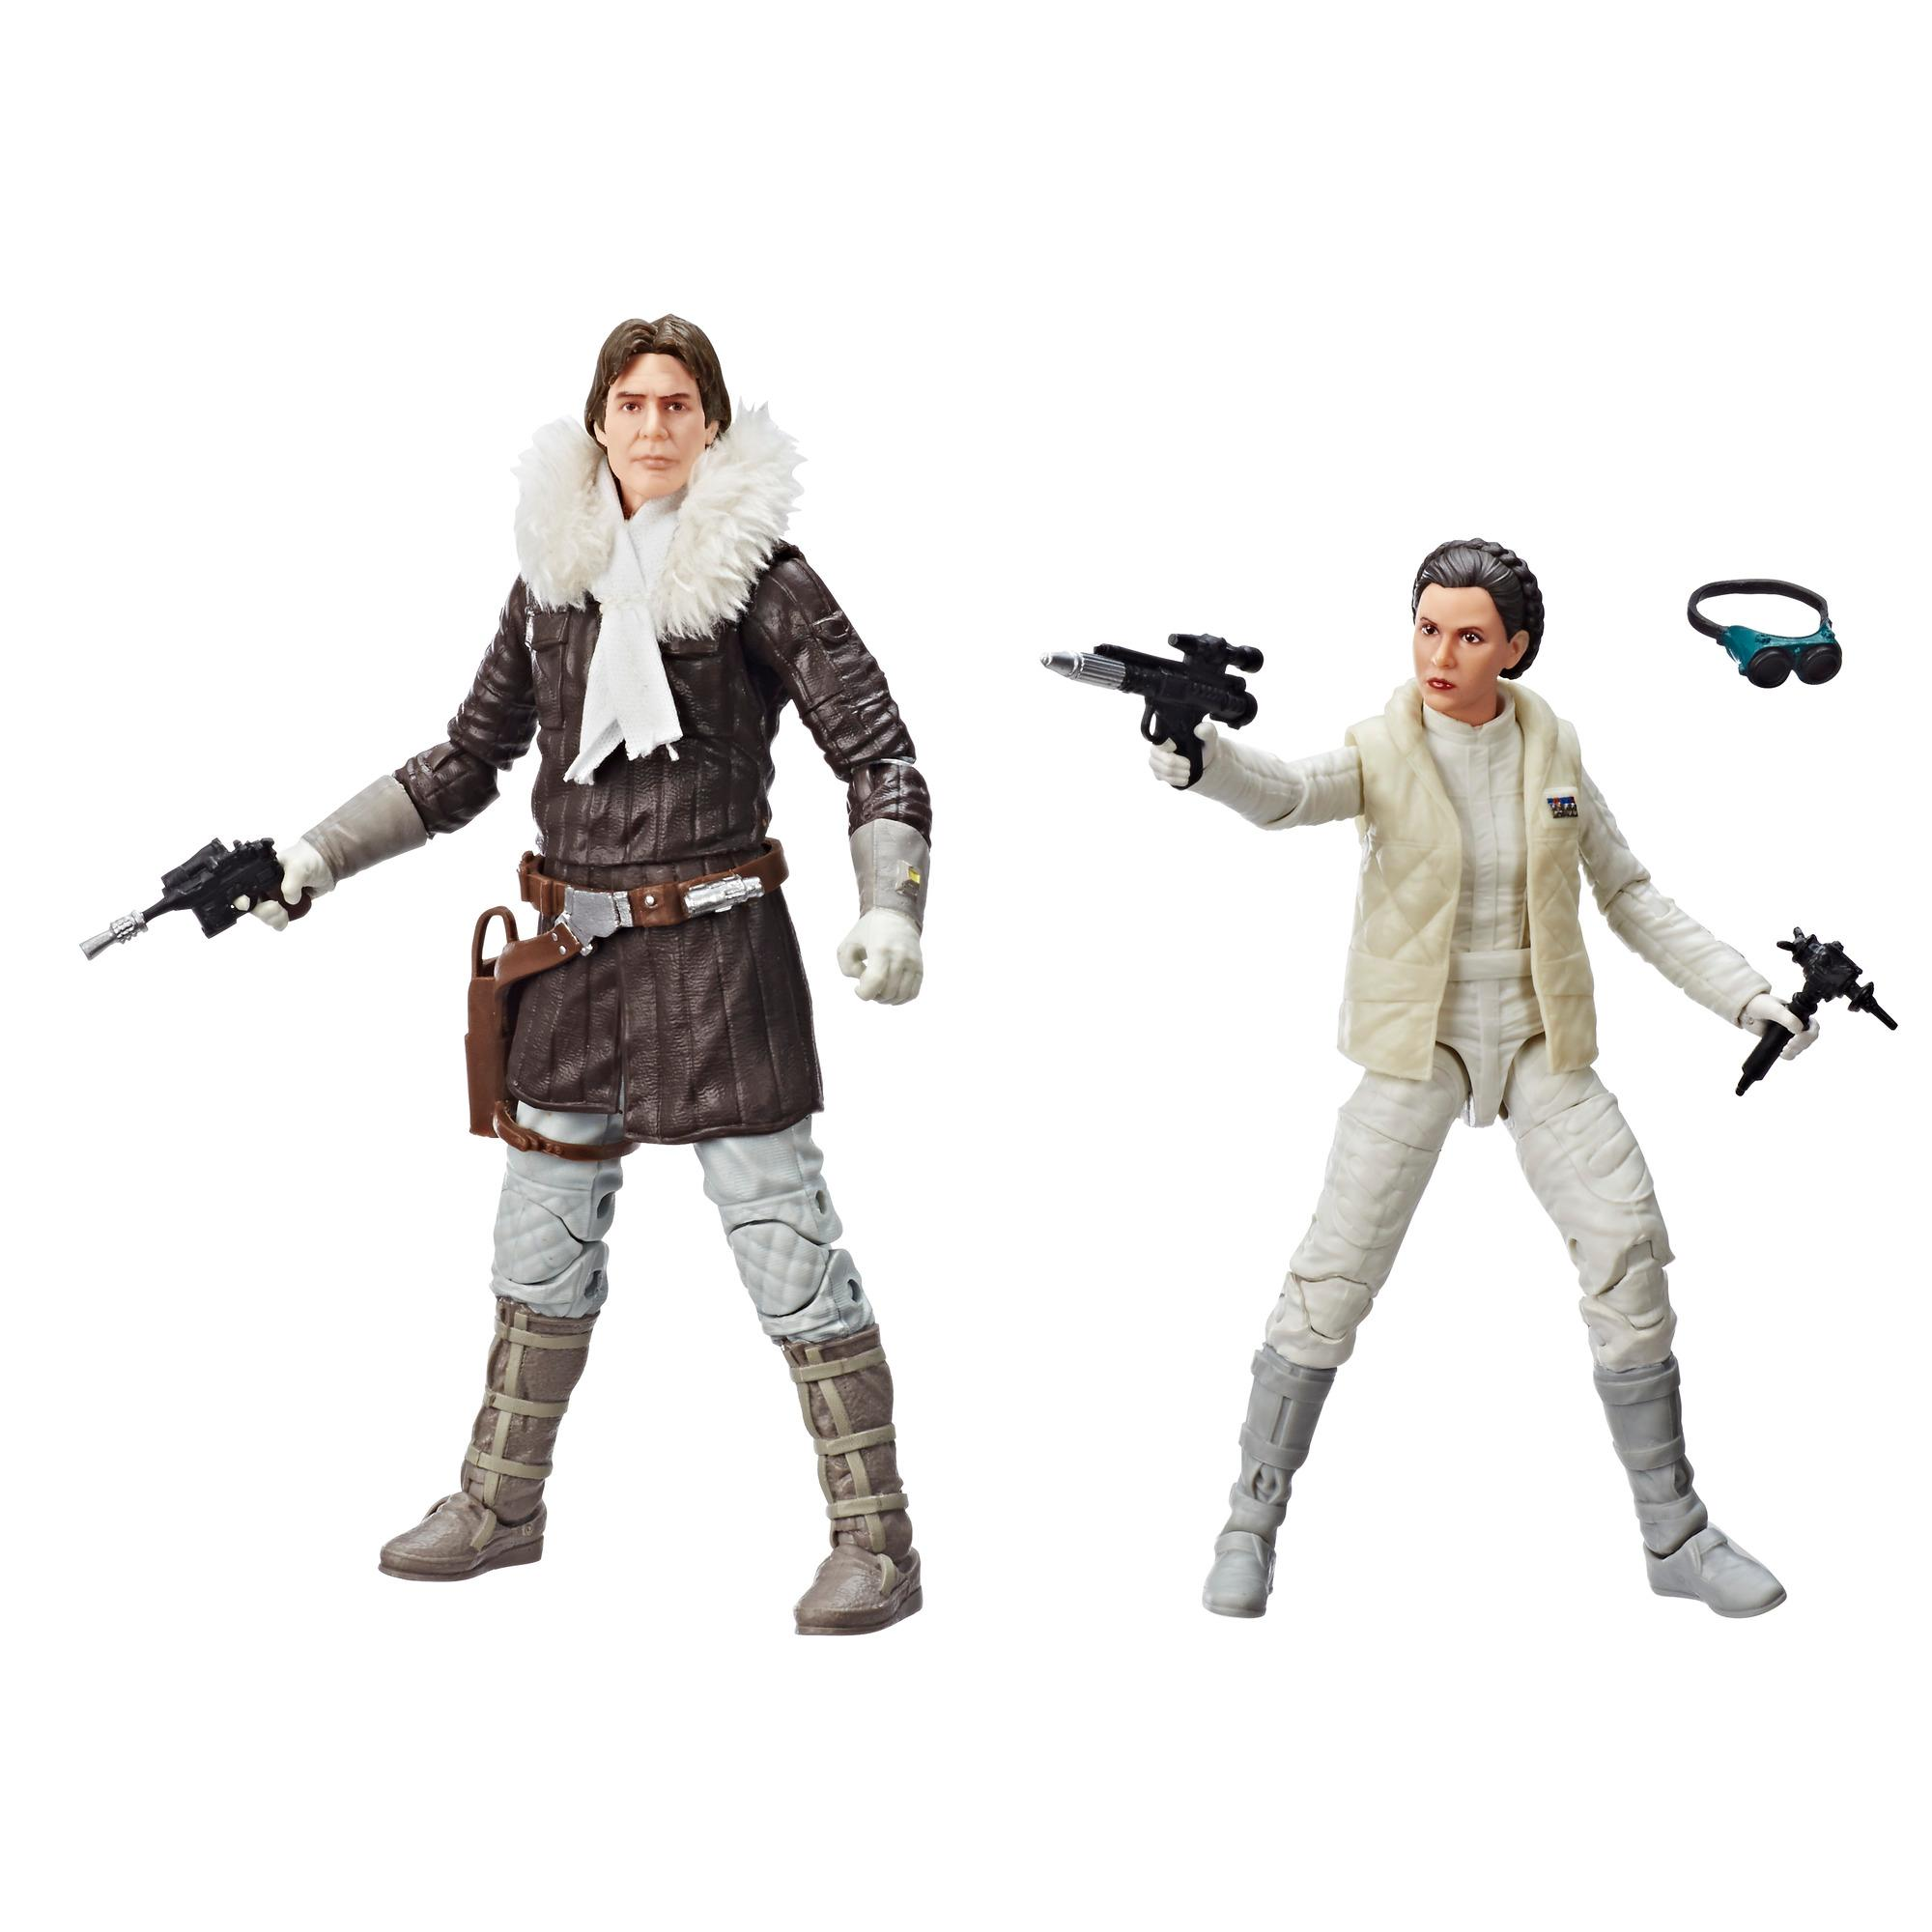 Star Wars The Black Series Han Solo and Princess Leia Organa Exclusive Pack